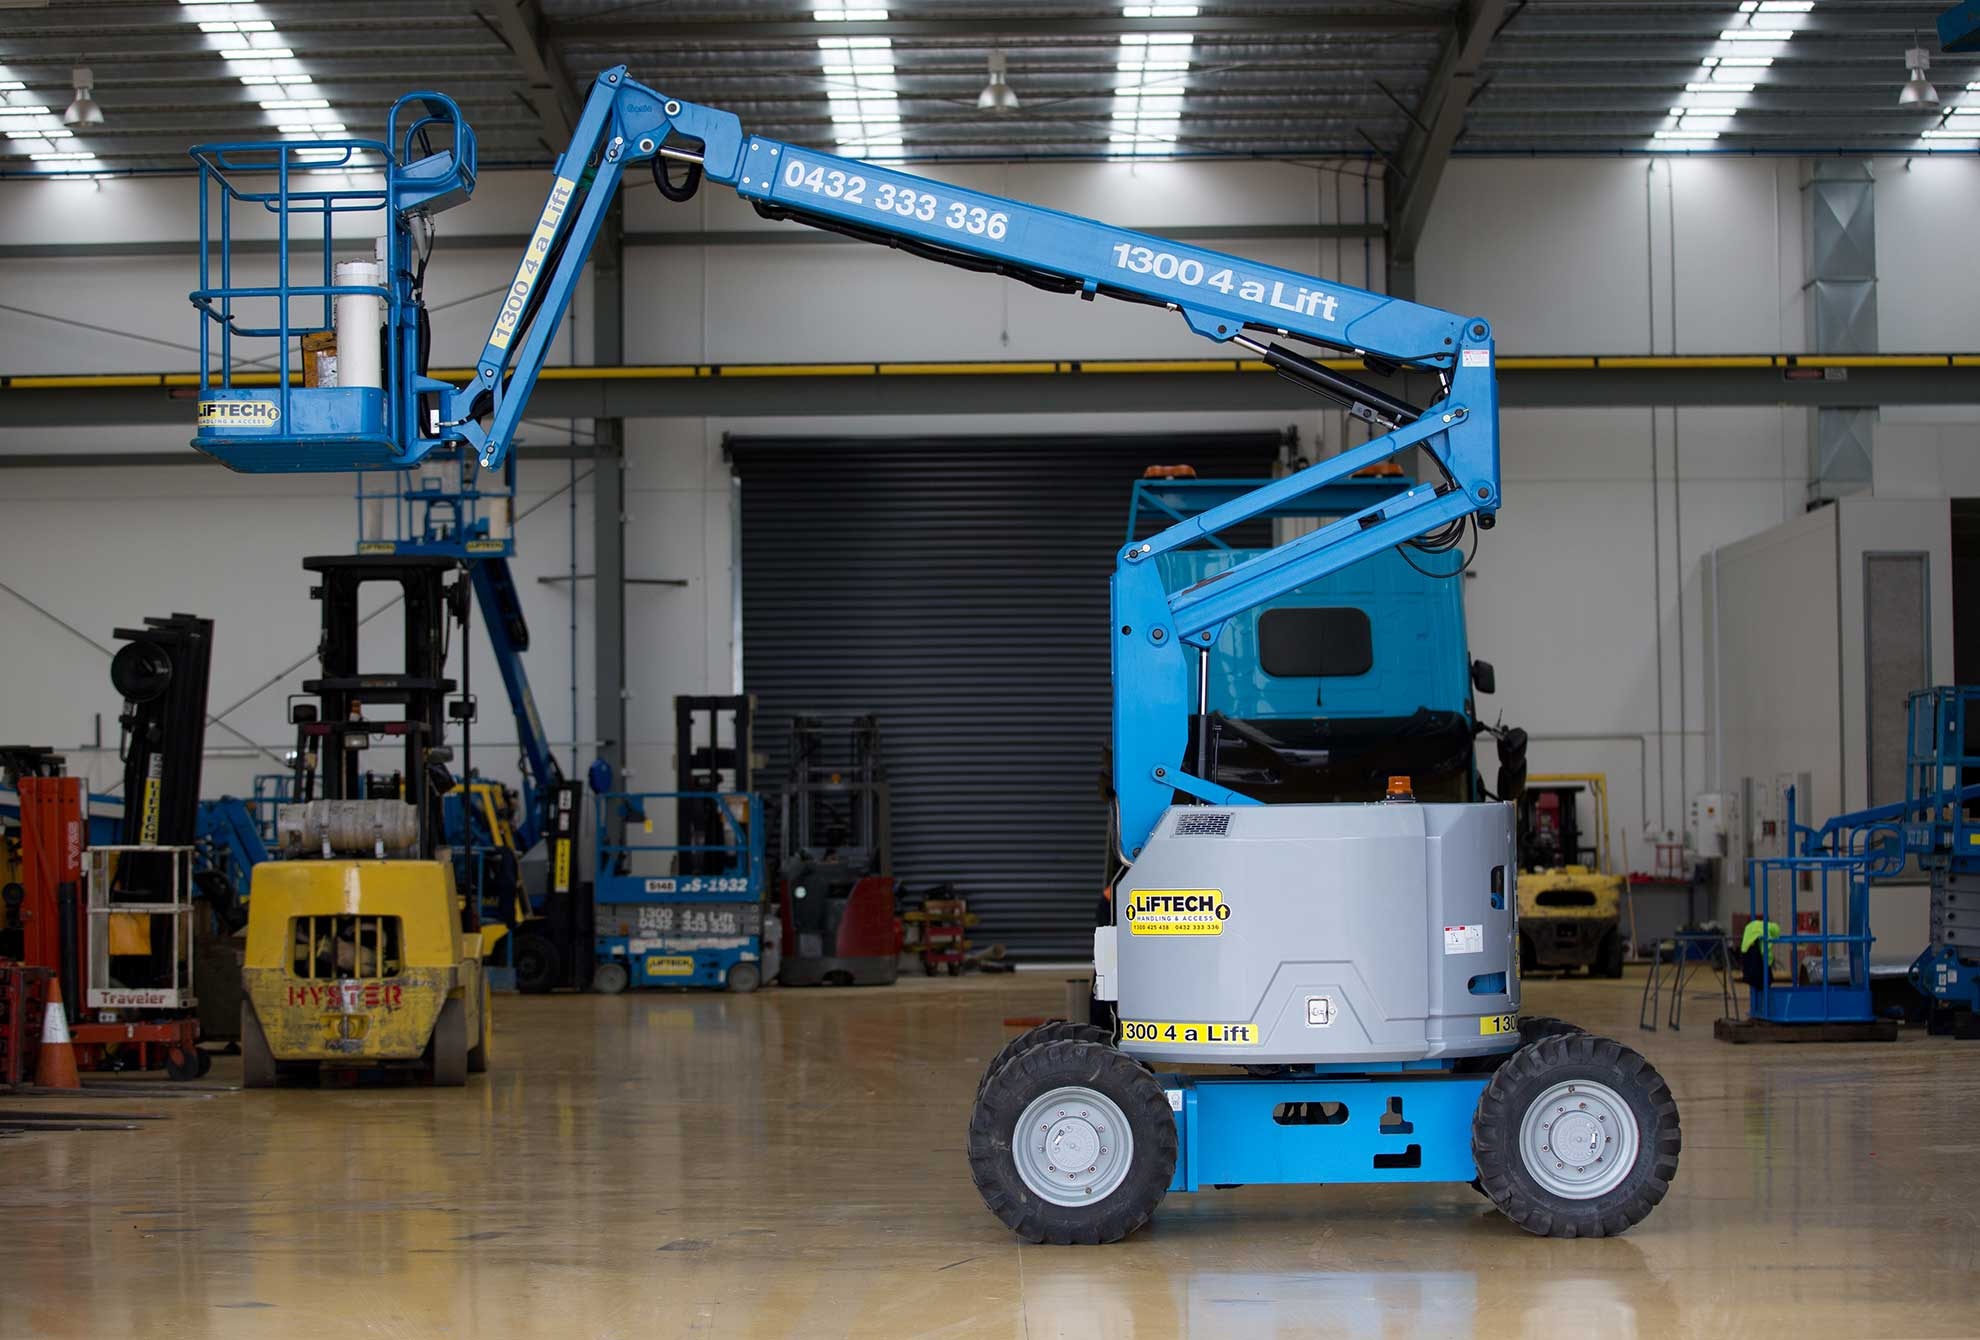 Hire Compact RT Knuckle Boom Lift Melbourne